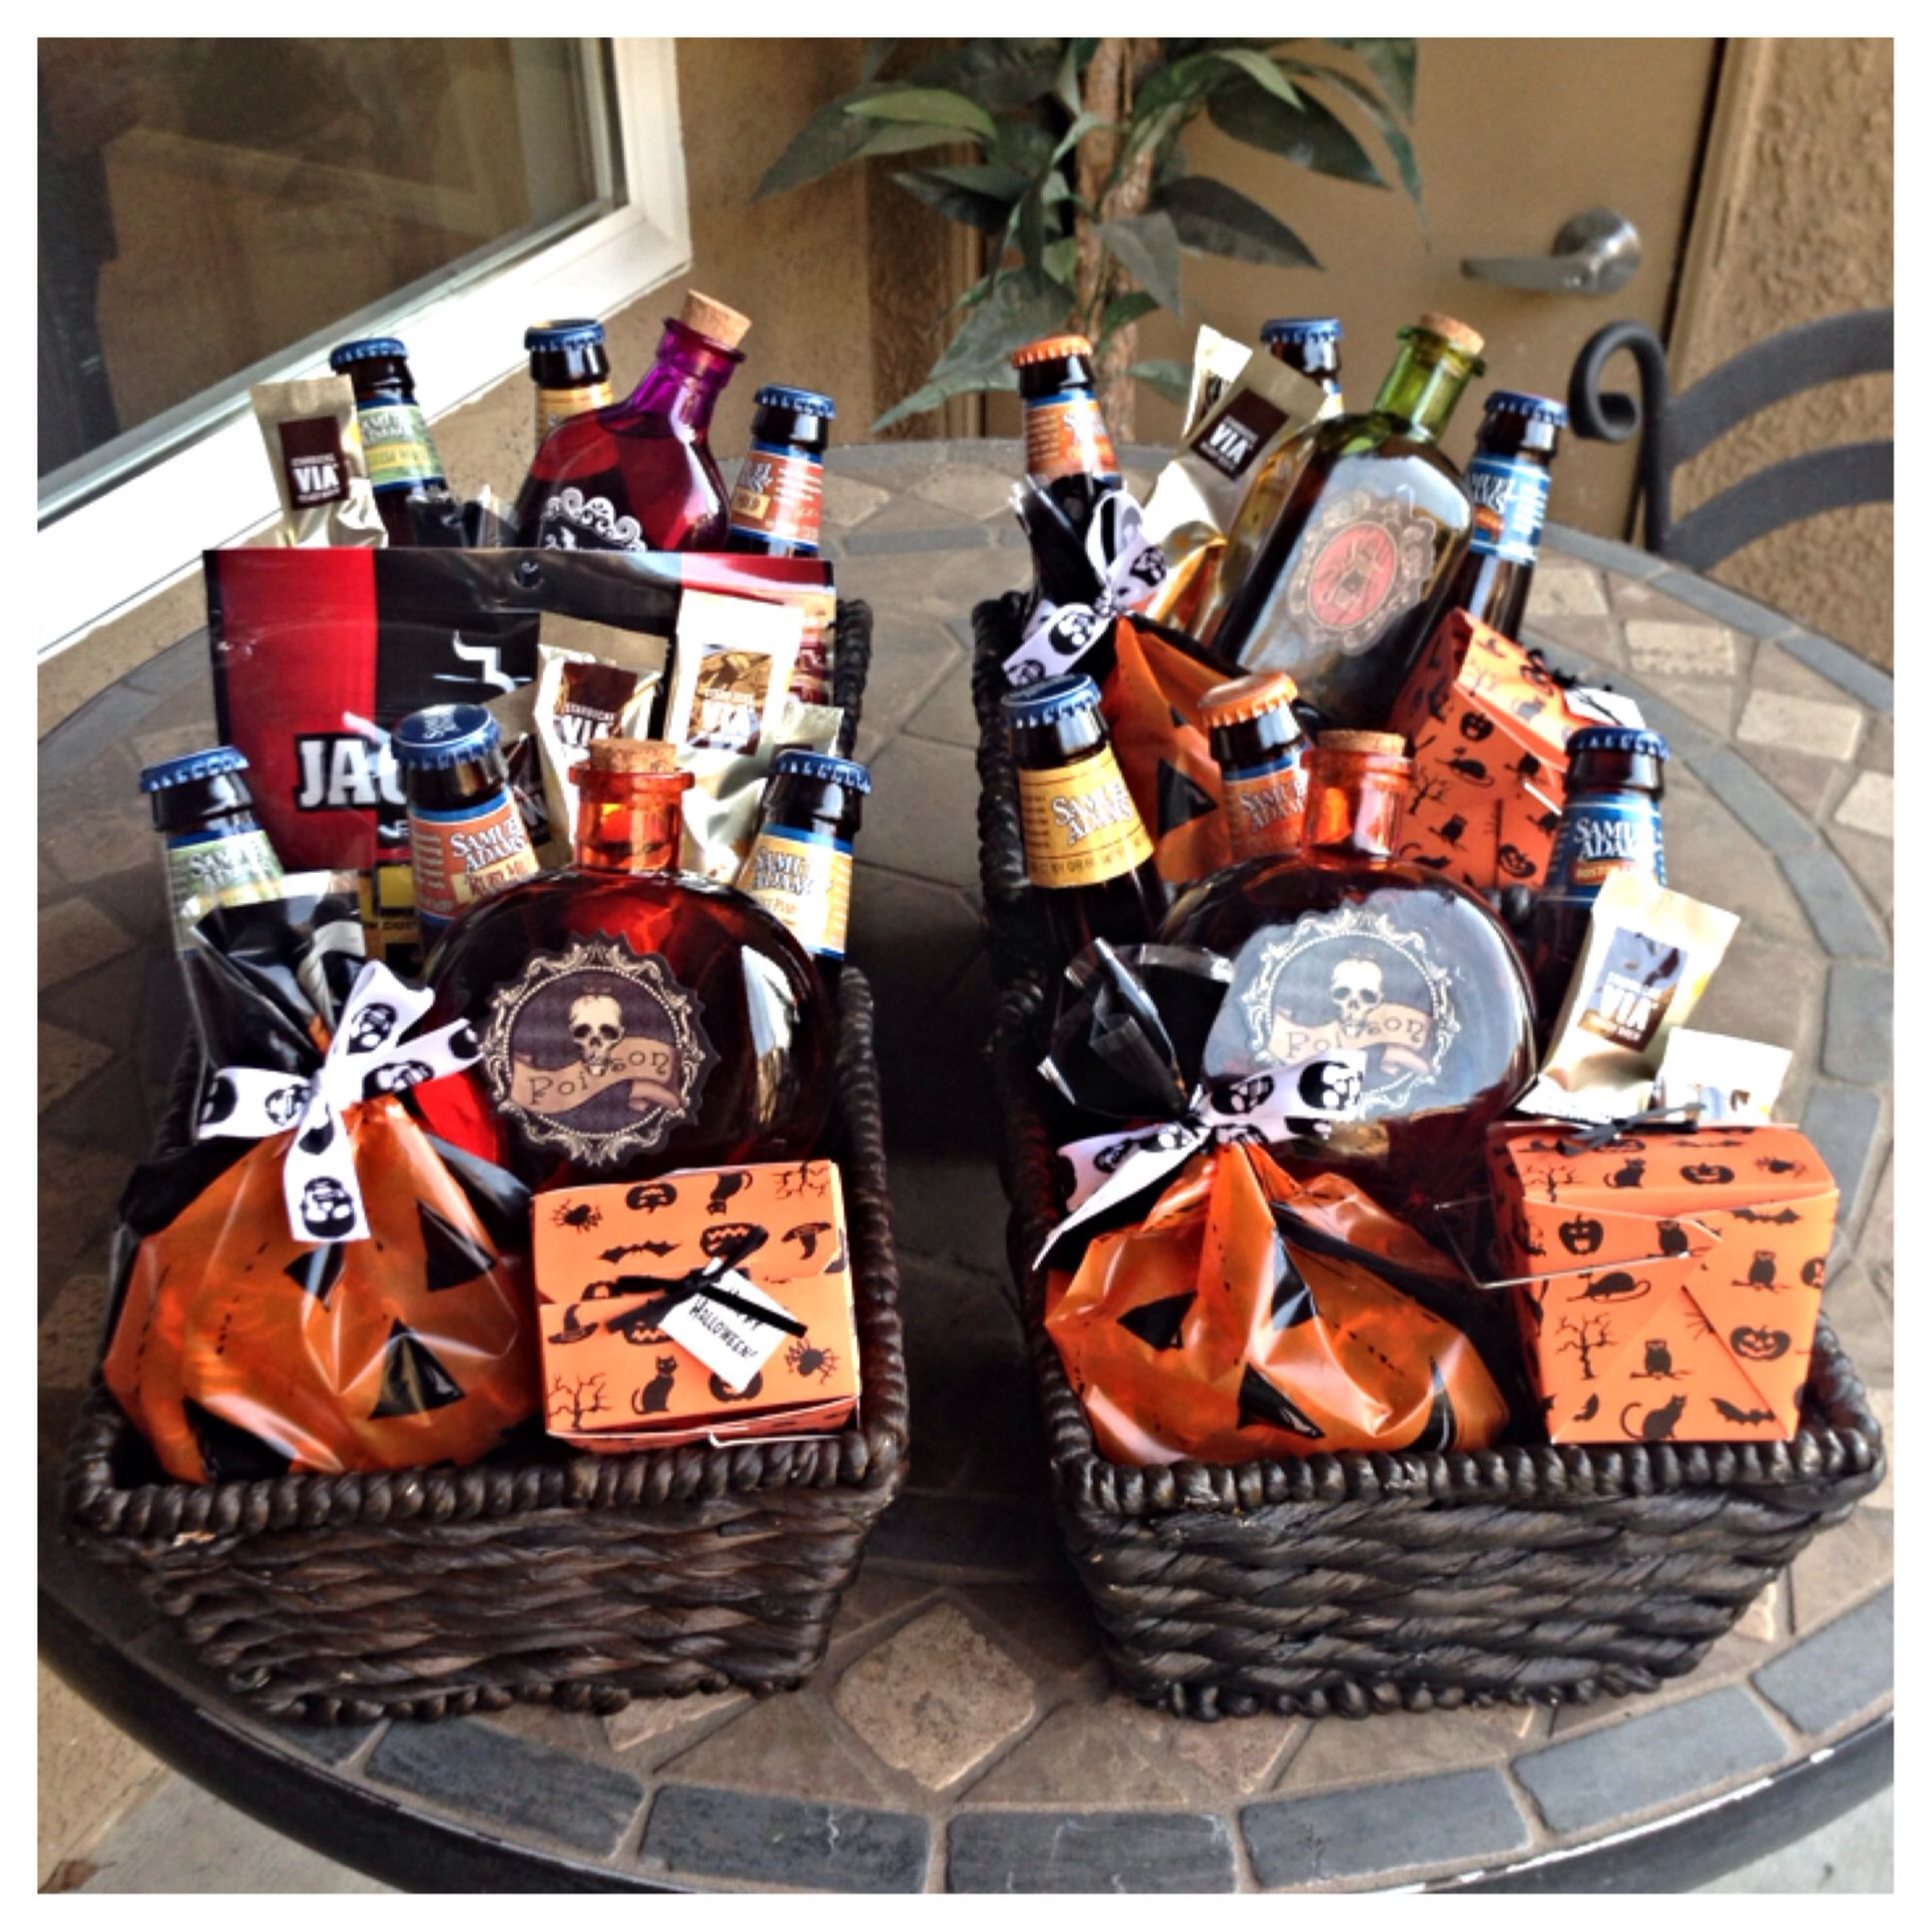 Halloween baskets I made for the guys. Samual Adams, Jim